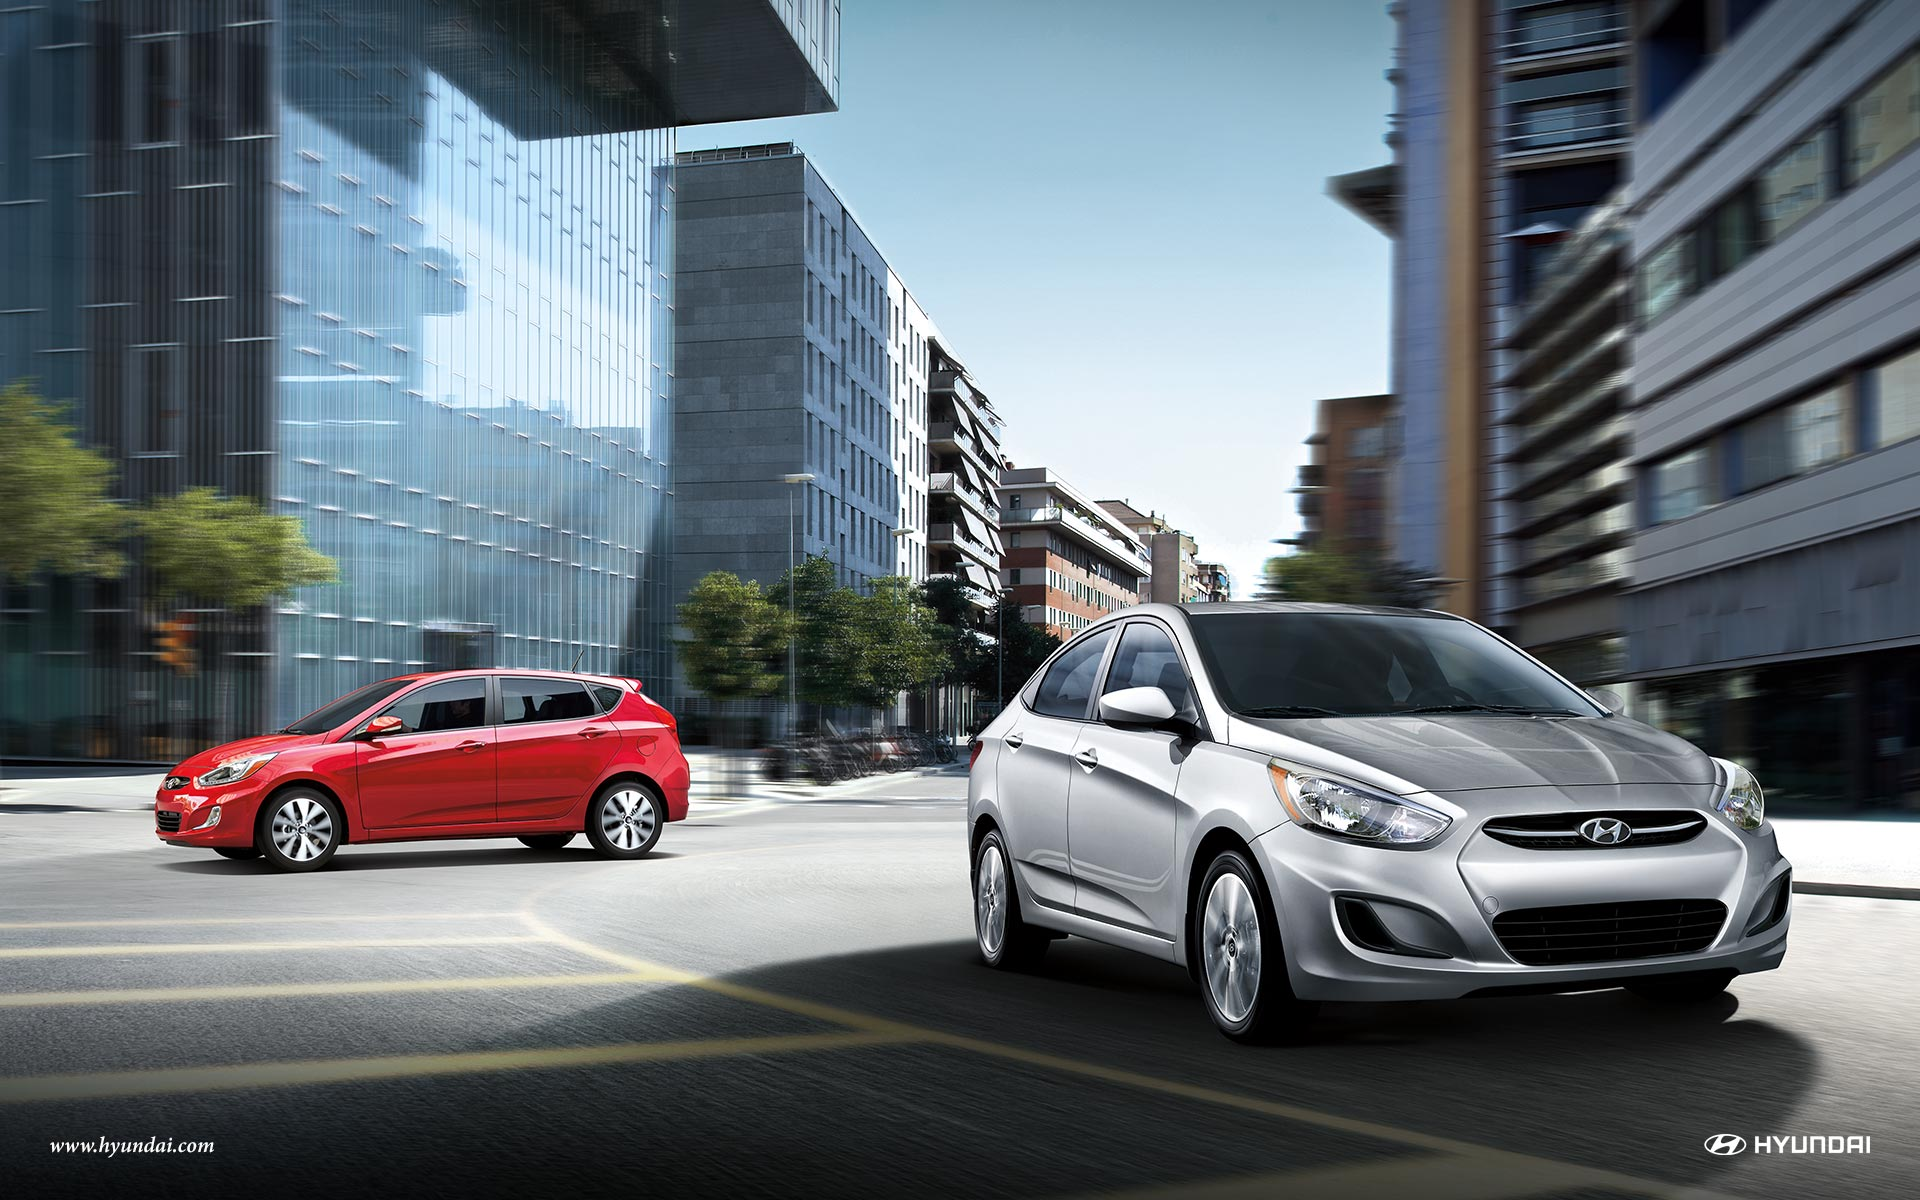 2017 Hyundai Accent Silver and Red Exterior